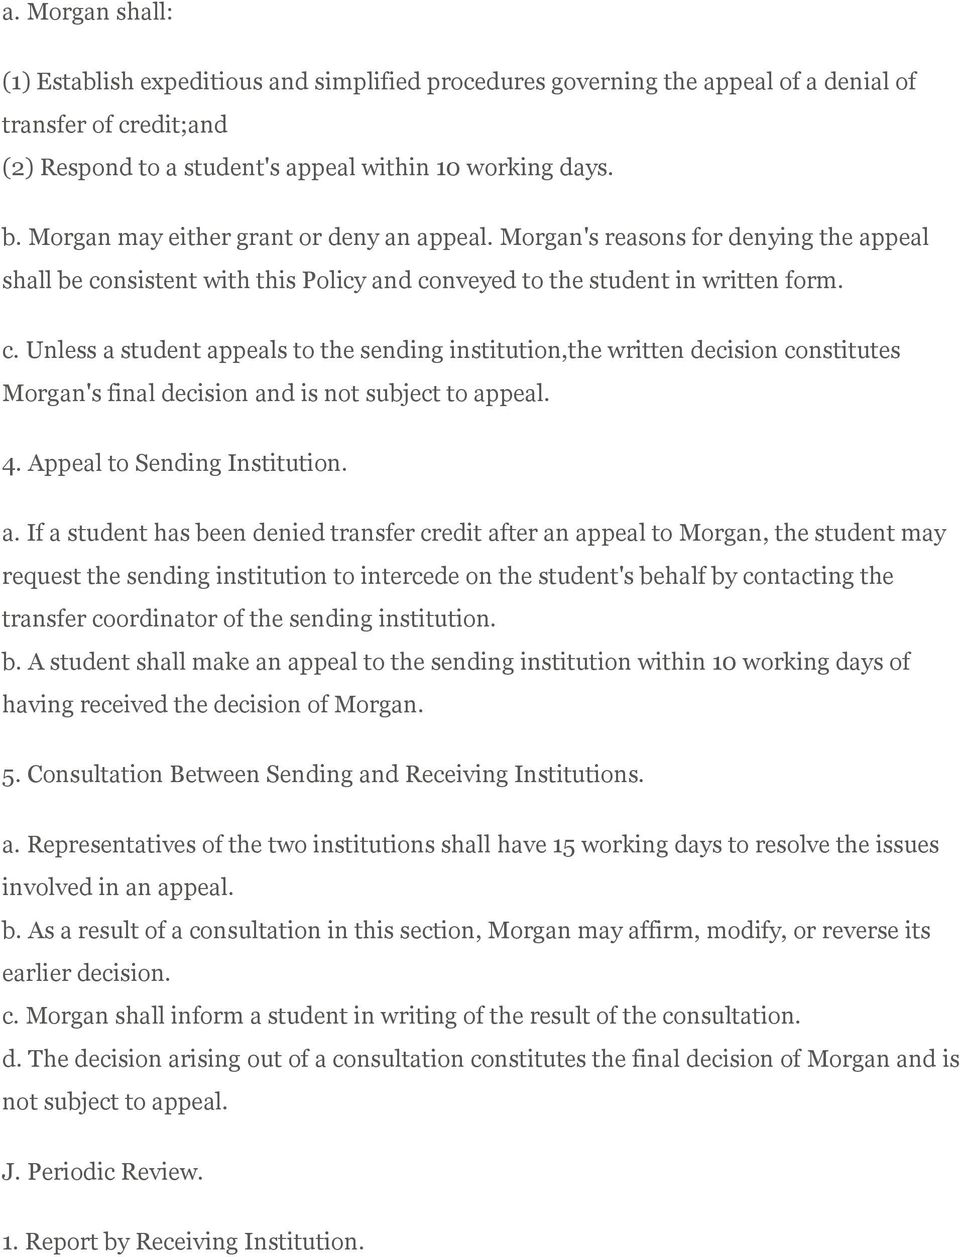 nsistent with this Policy and conveyed to the student in written form. c. Unless a student appeals to the sending institution,the written decision constitutes Morgan's final decision and is not subject to appeal.